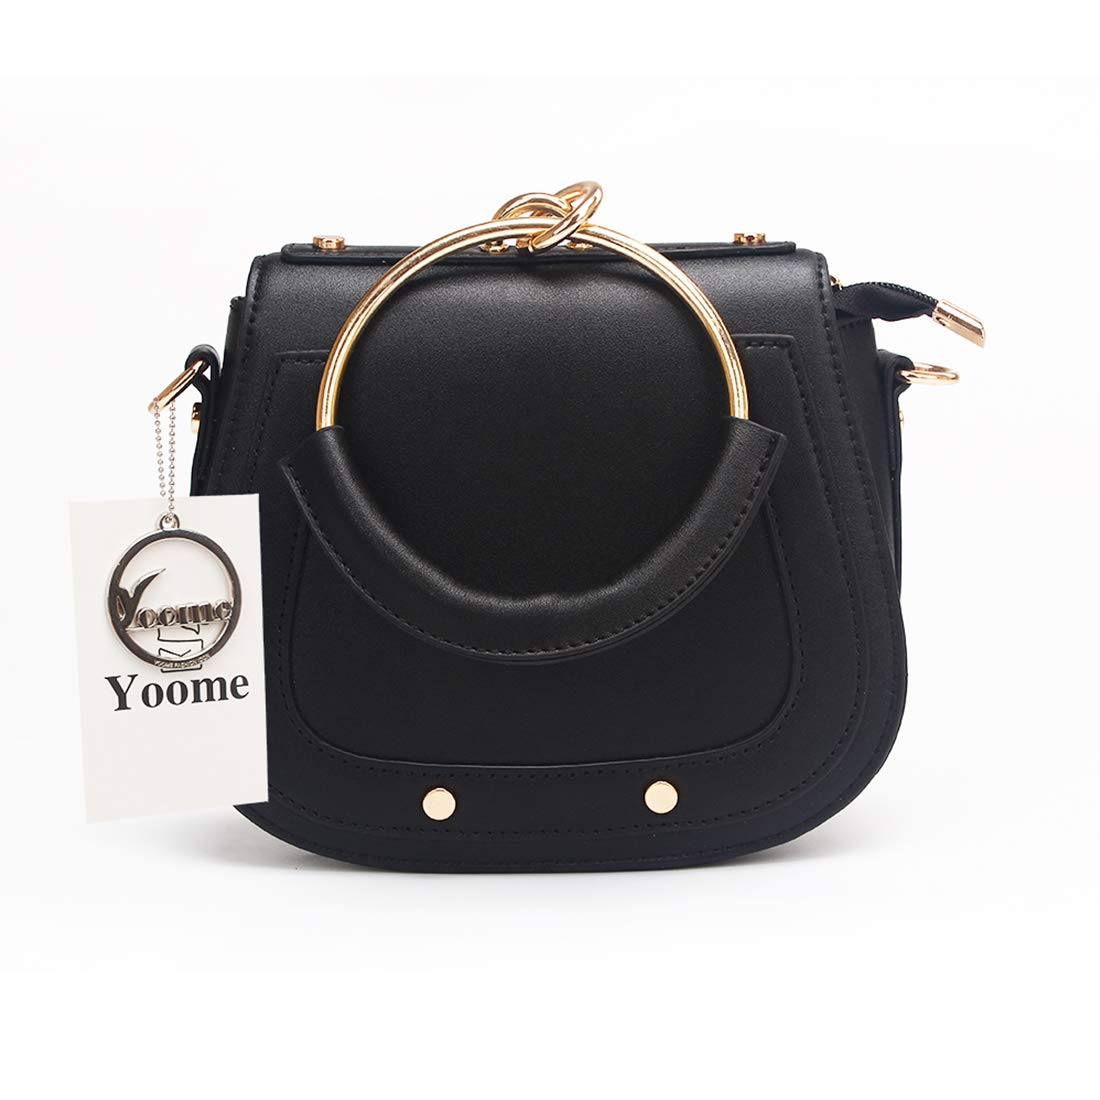 Yoome Elegant Rivets Punk Style Circular Ring Handle Handbags Messenger Crossbody Bags For Girls - Black.Leather Handle